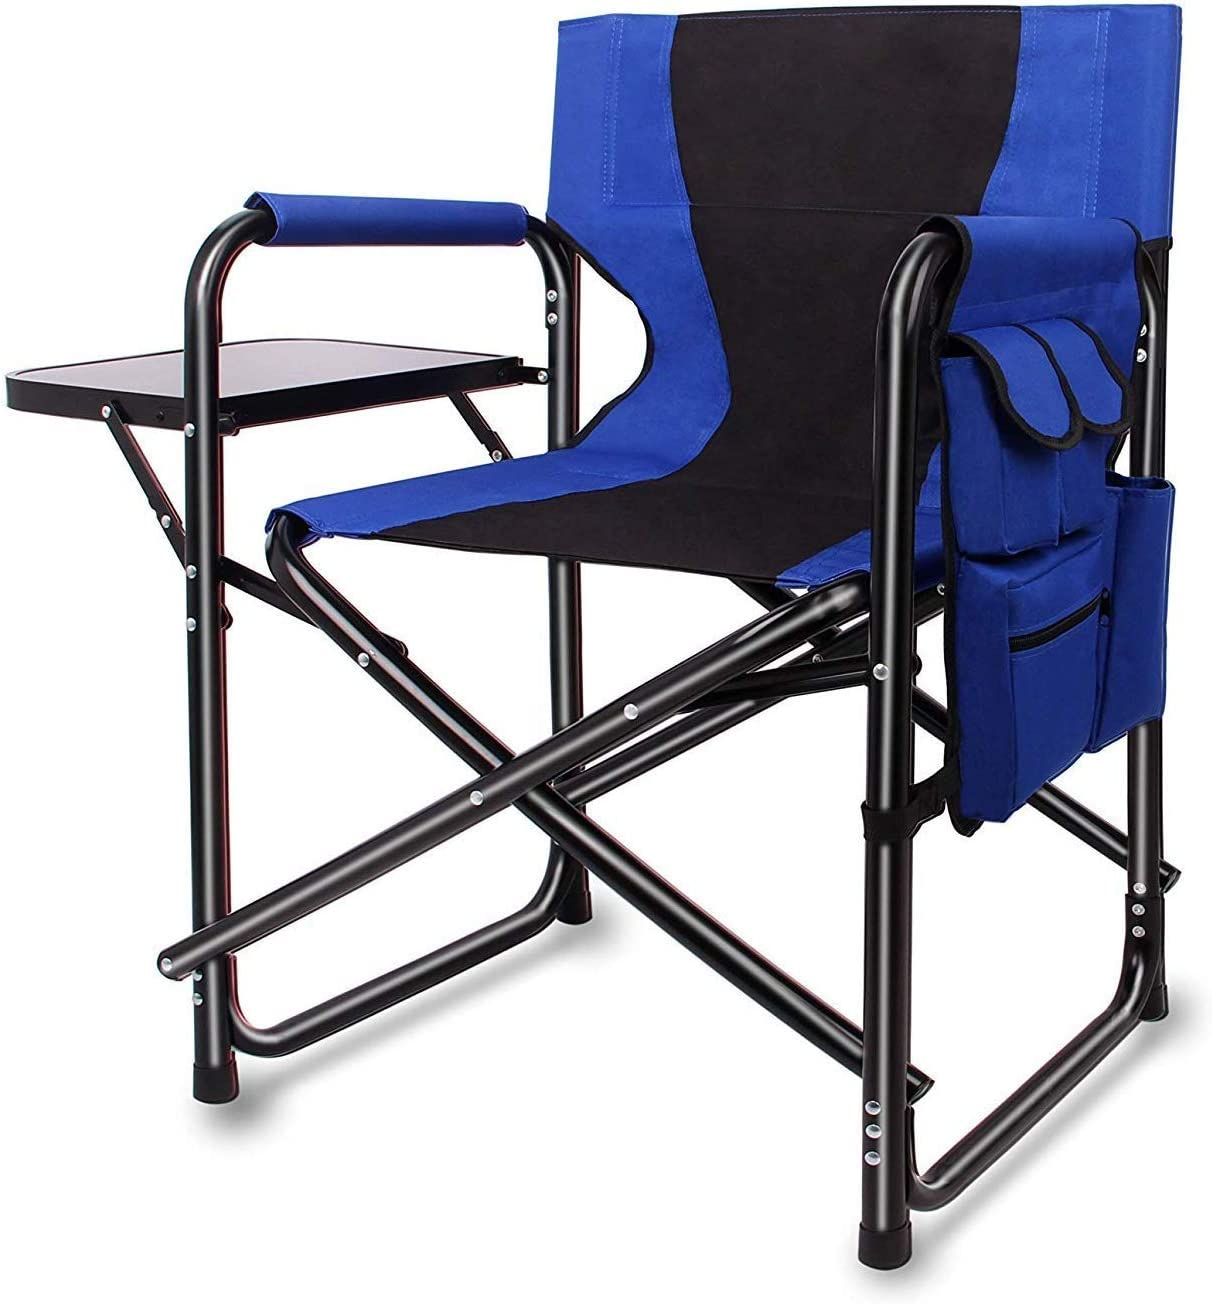 Portable Folding Directors Camping Chair – Full Back Artist Makeup Chair with Side Table Storage Bag Lightweight Aluminum Heavy Duty Supports 300lbs Outdoor Indoor